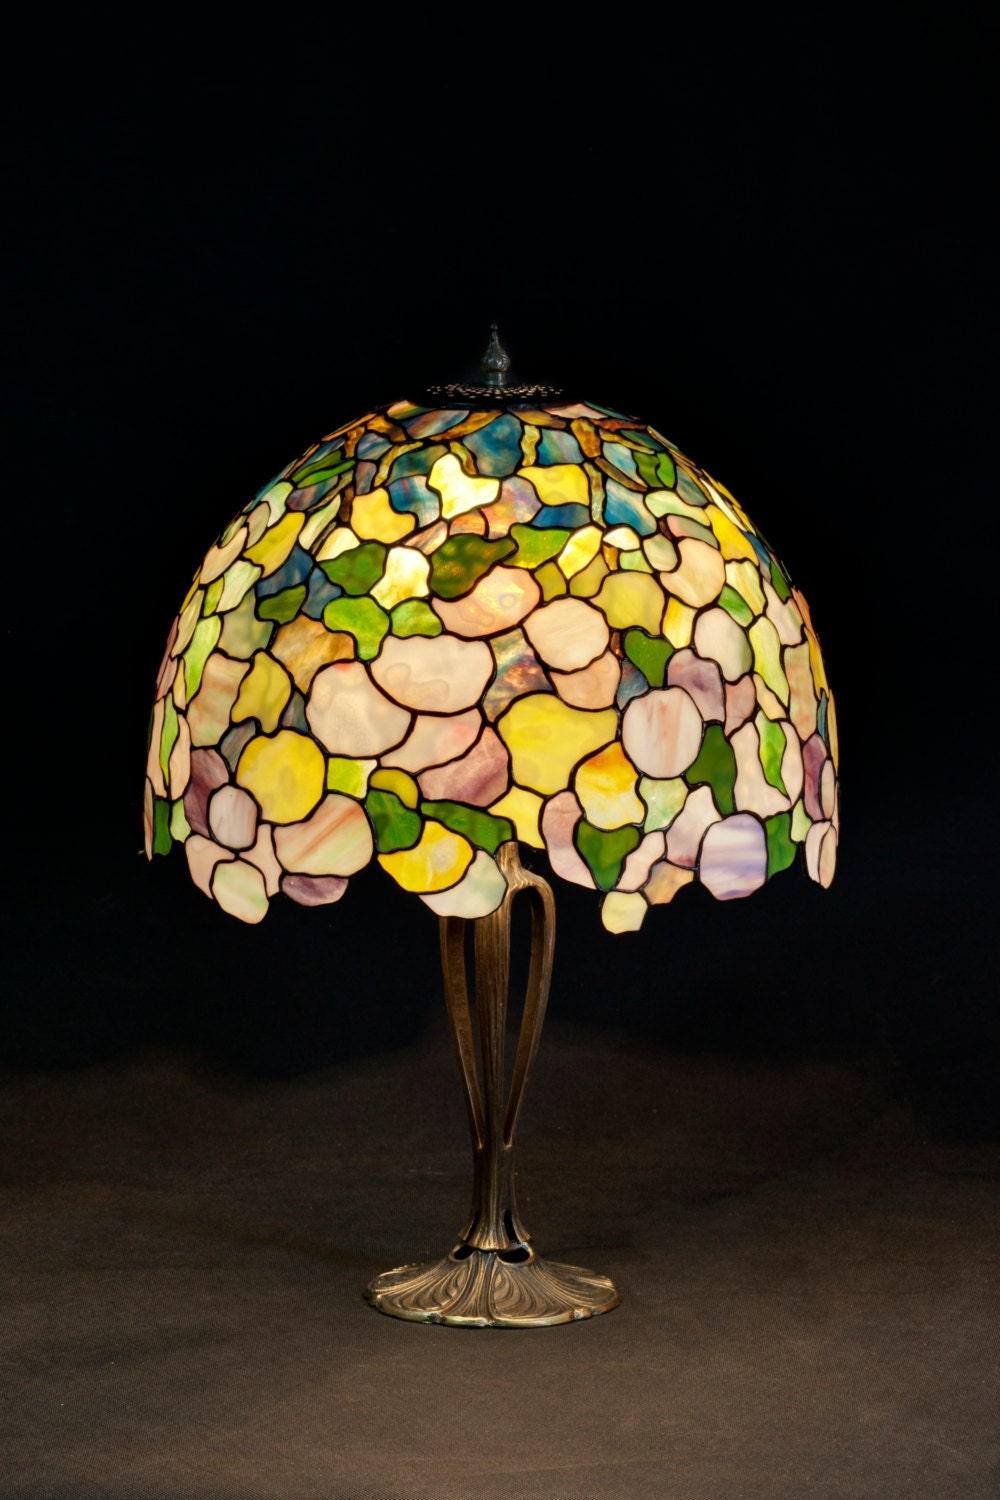 Office lamp table lamp stained glass shade bedside lamp for Glass bedside lamp shades